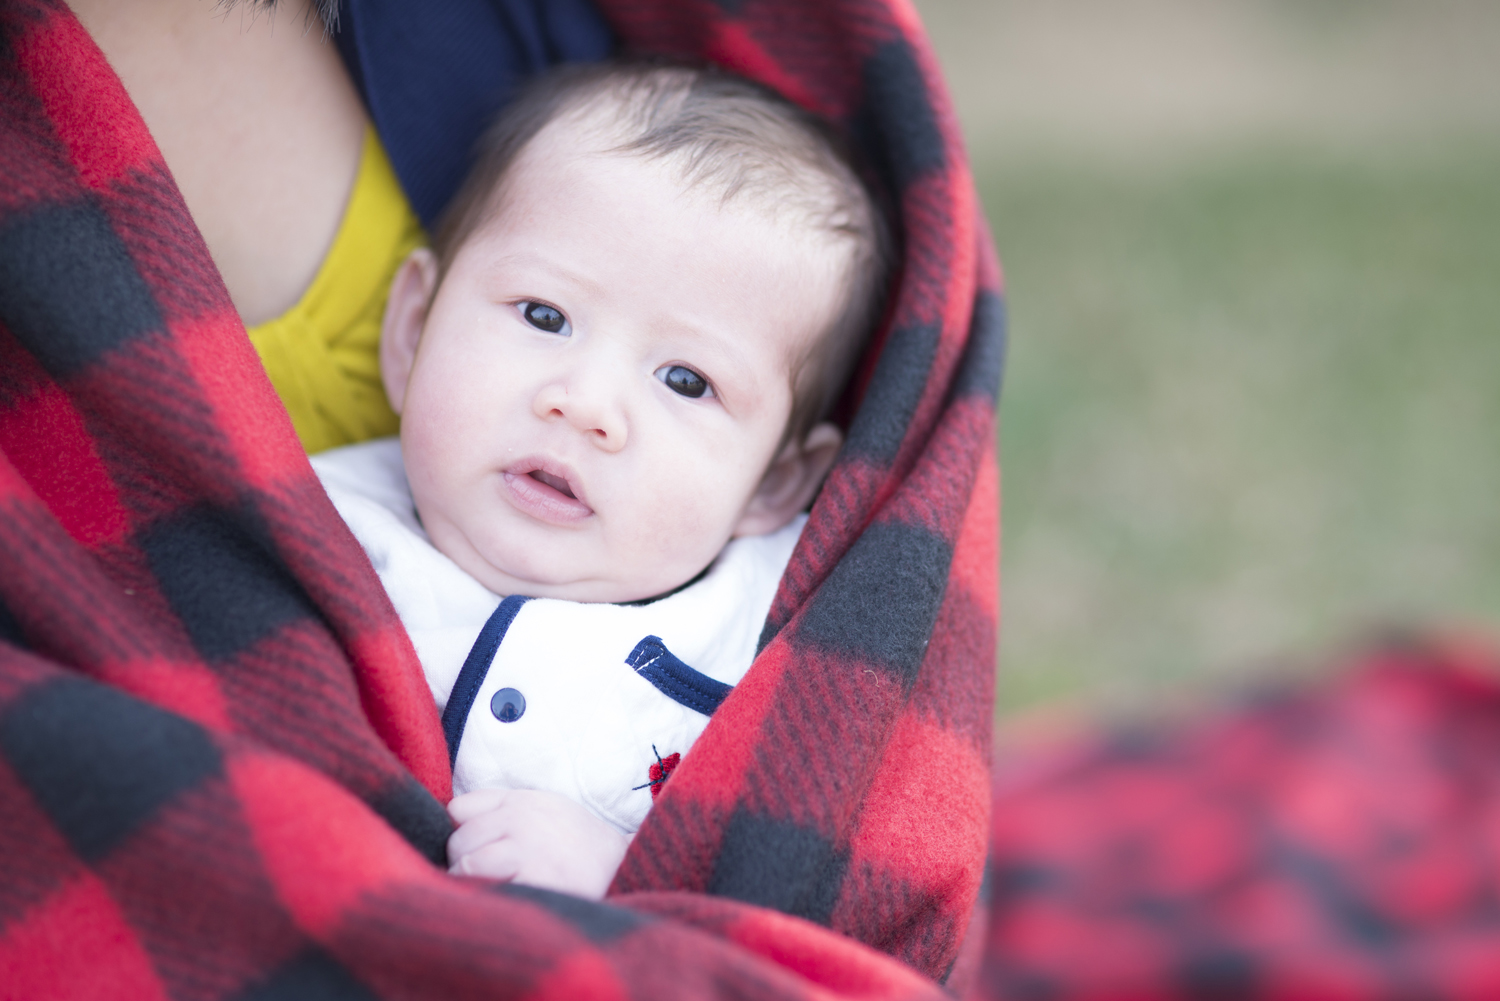 Newborn wrapped in plaid blanket